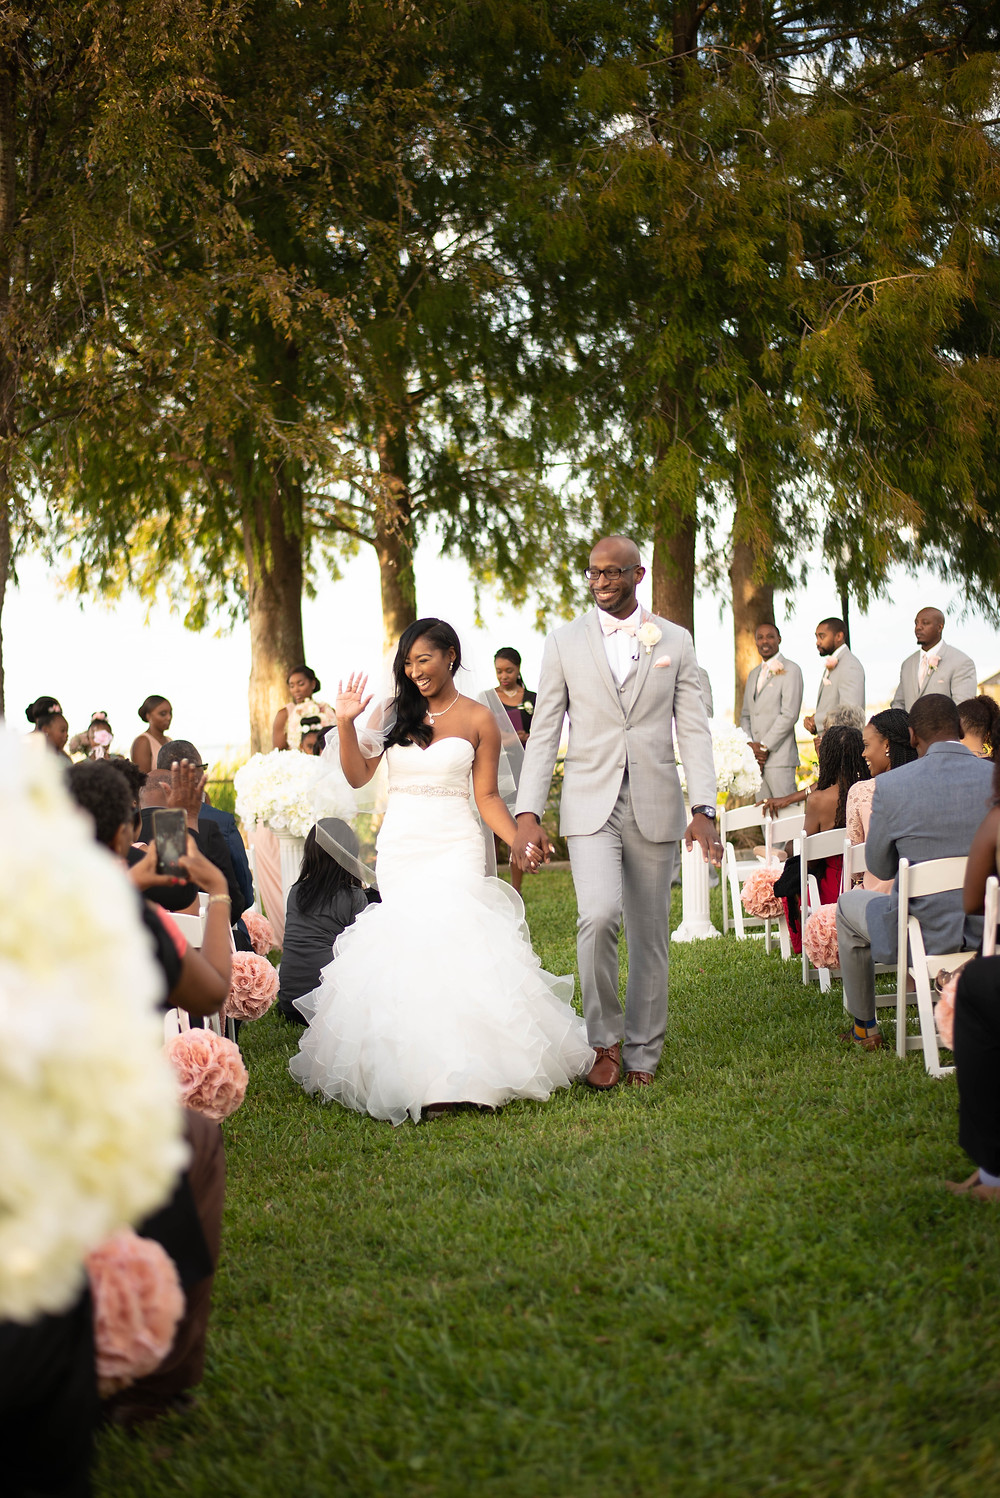 Bride and Groom Wedding Ceremony at Tanner Hall in Winter Garden, Florida